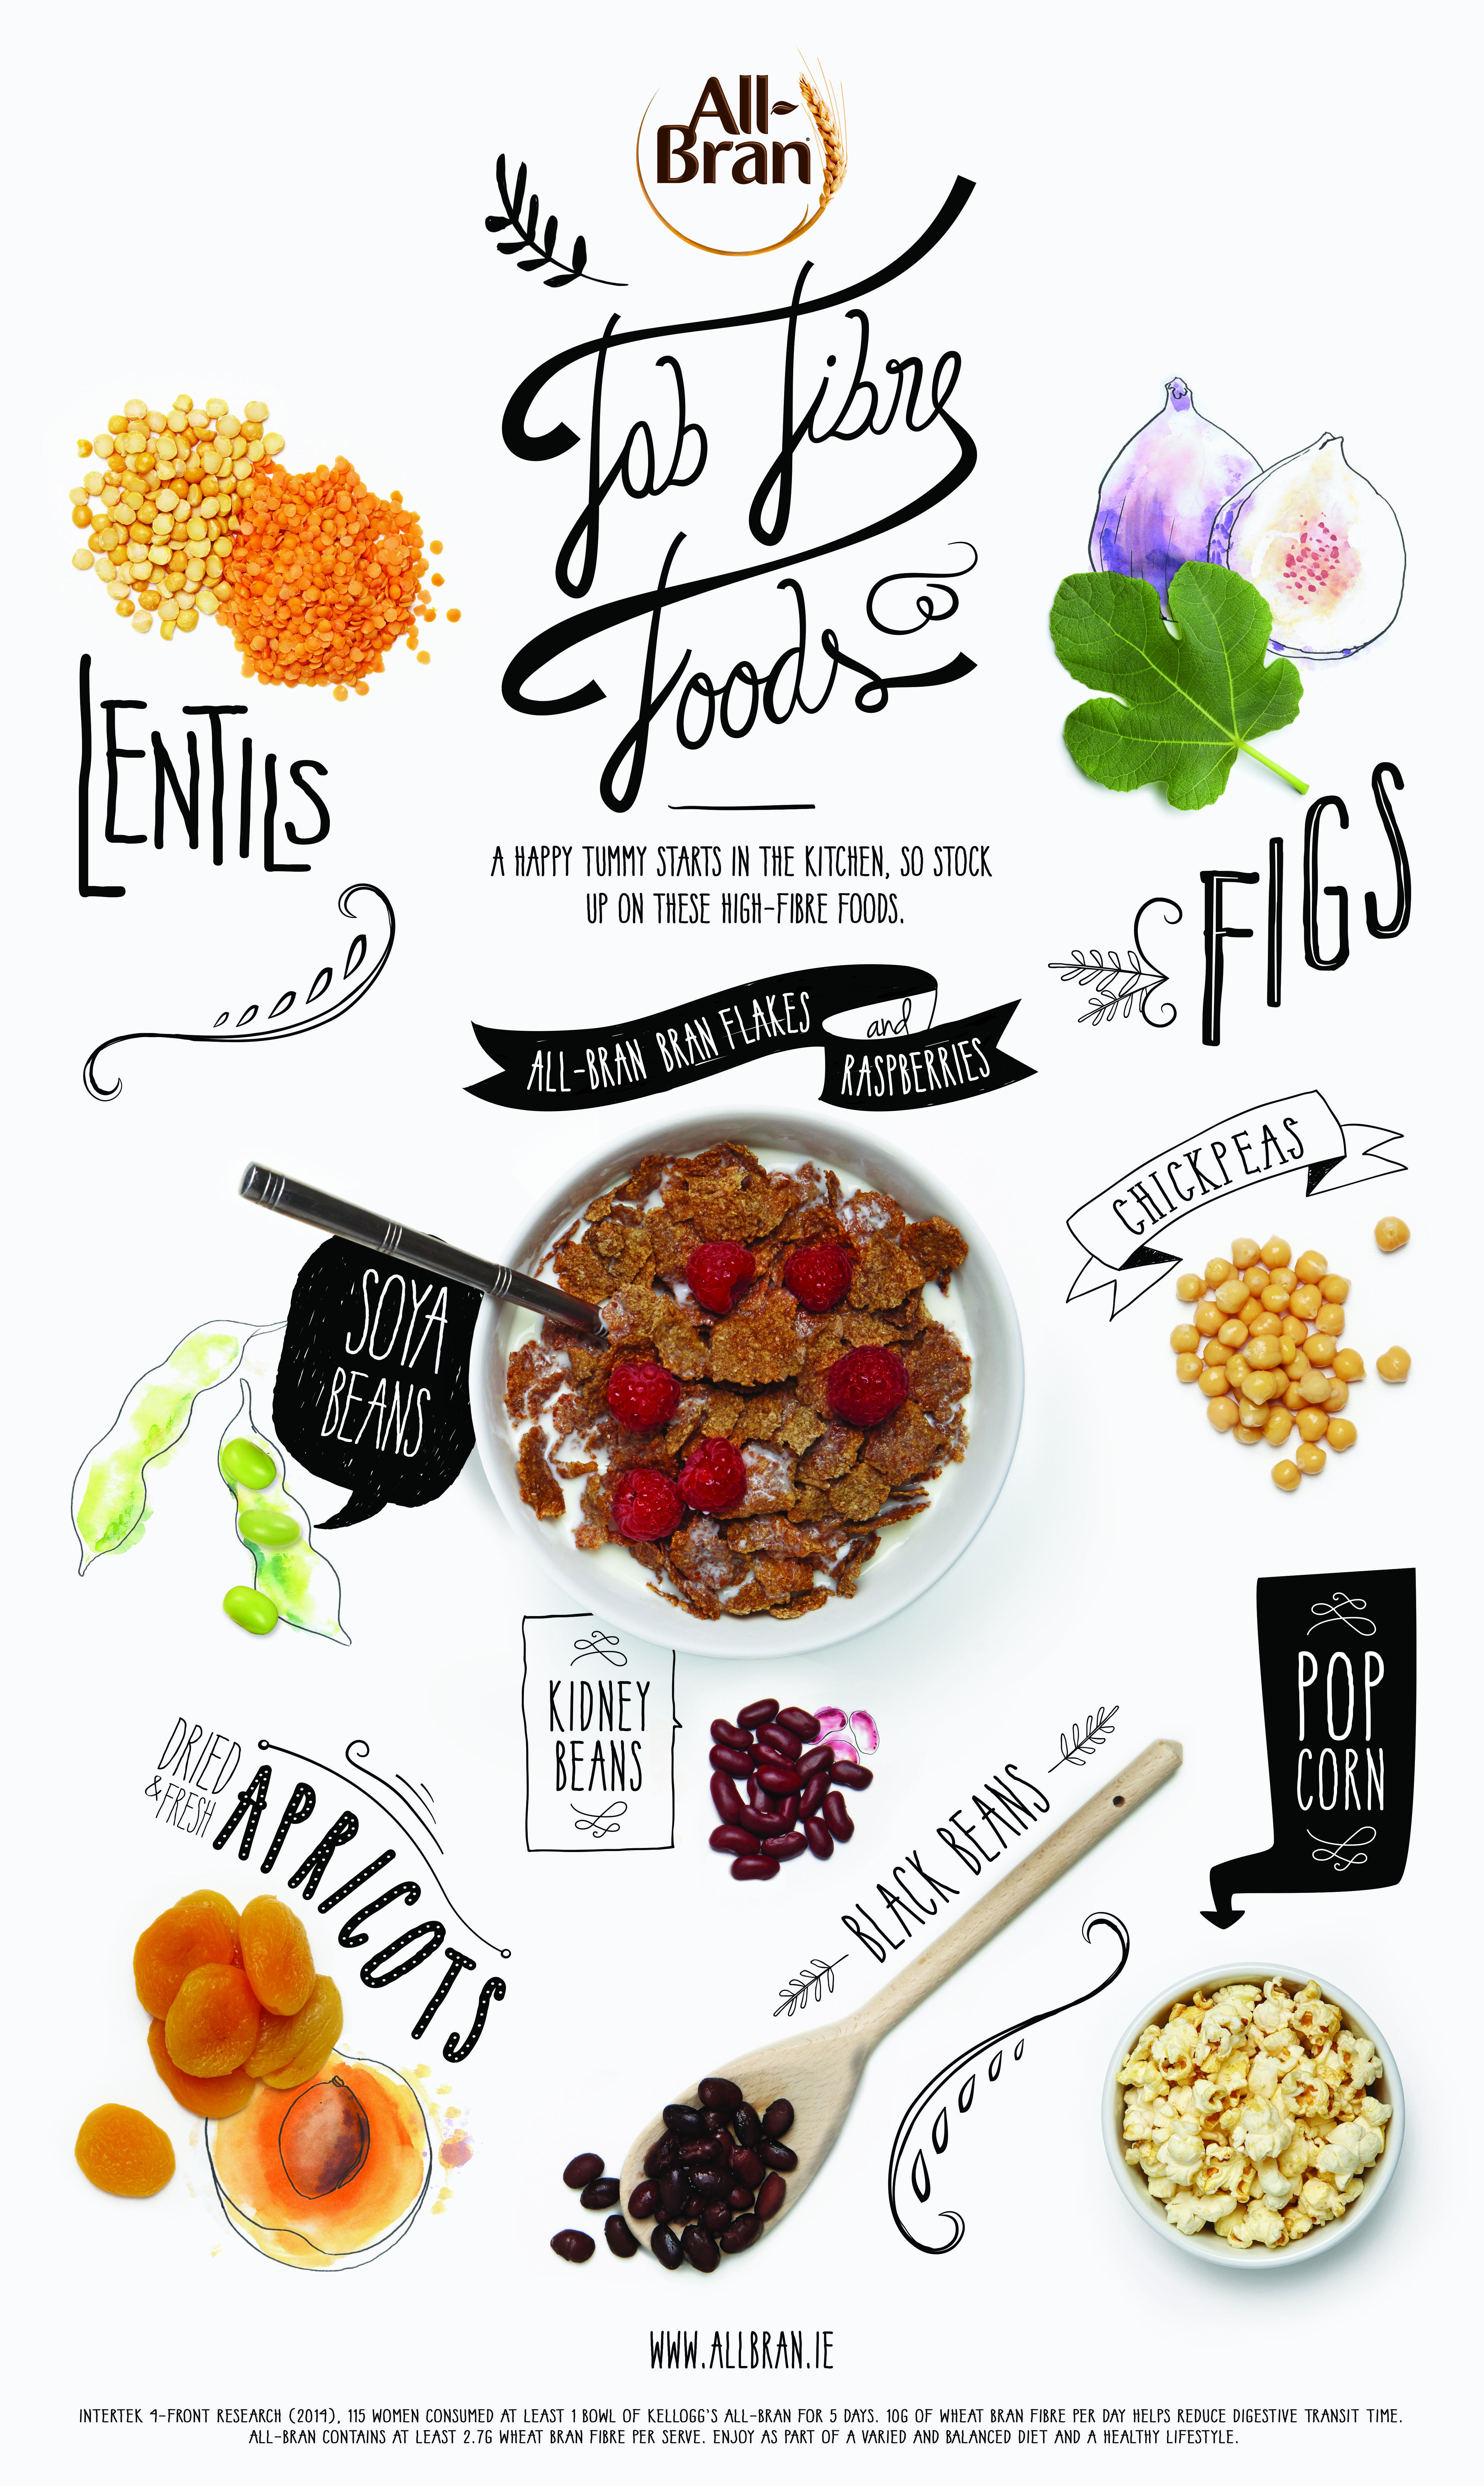 A happy tummy starts in the kitchen, so stock up on these high-fibre ...